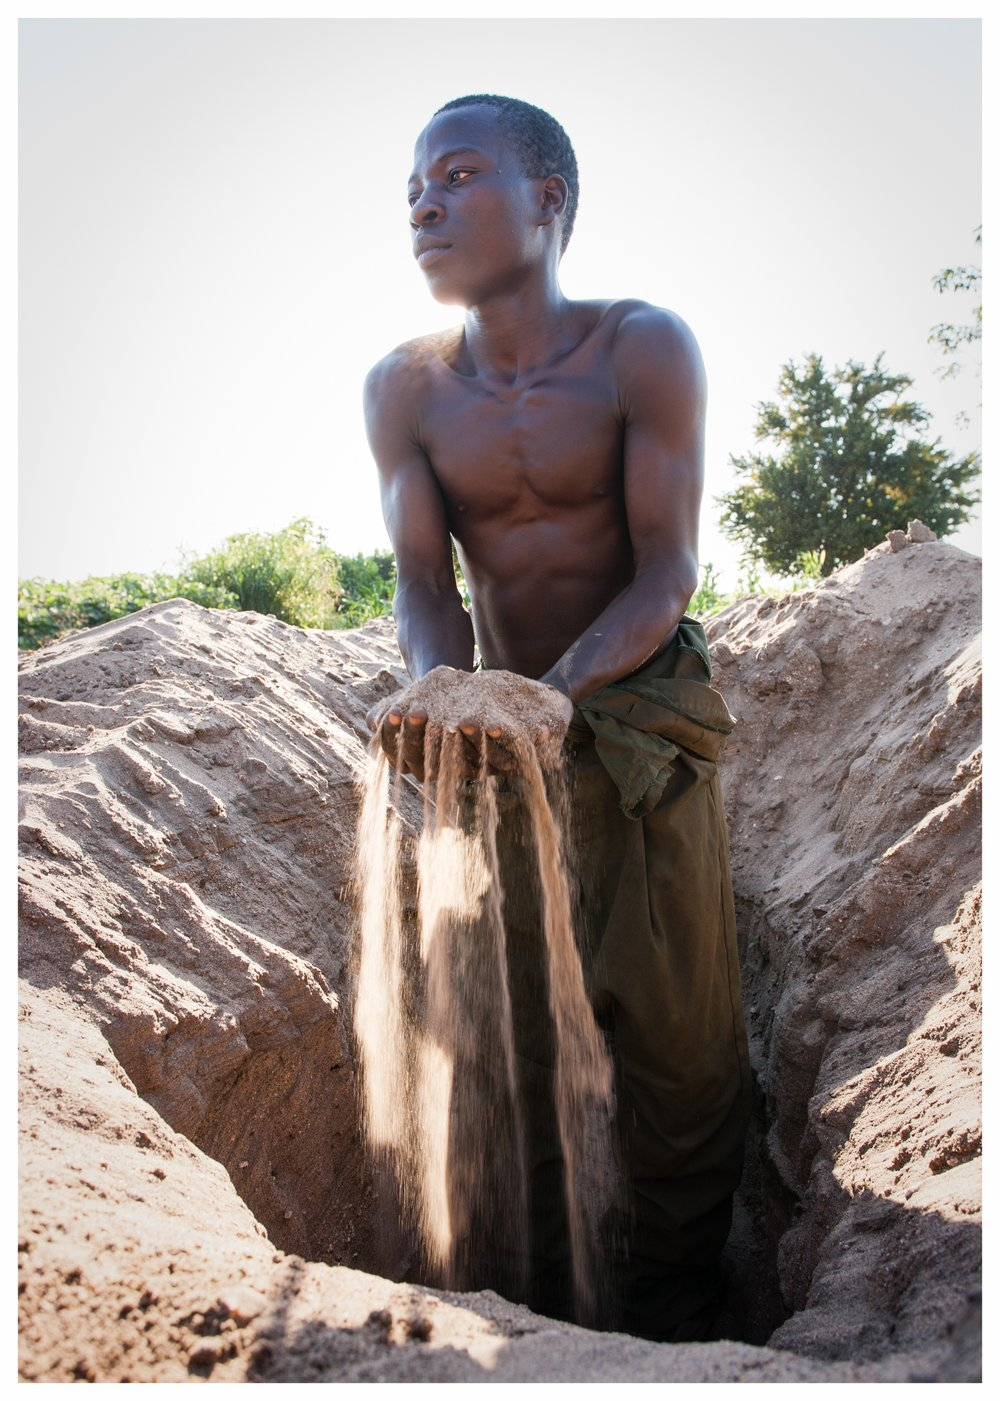 Andrew digs through sand to find fertile soil for his crop. Fombe, Chikwawa, Malawi. Photo © Marcus Perkins